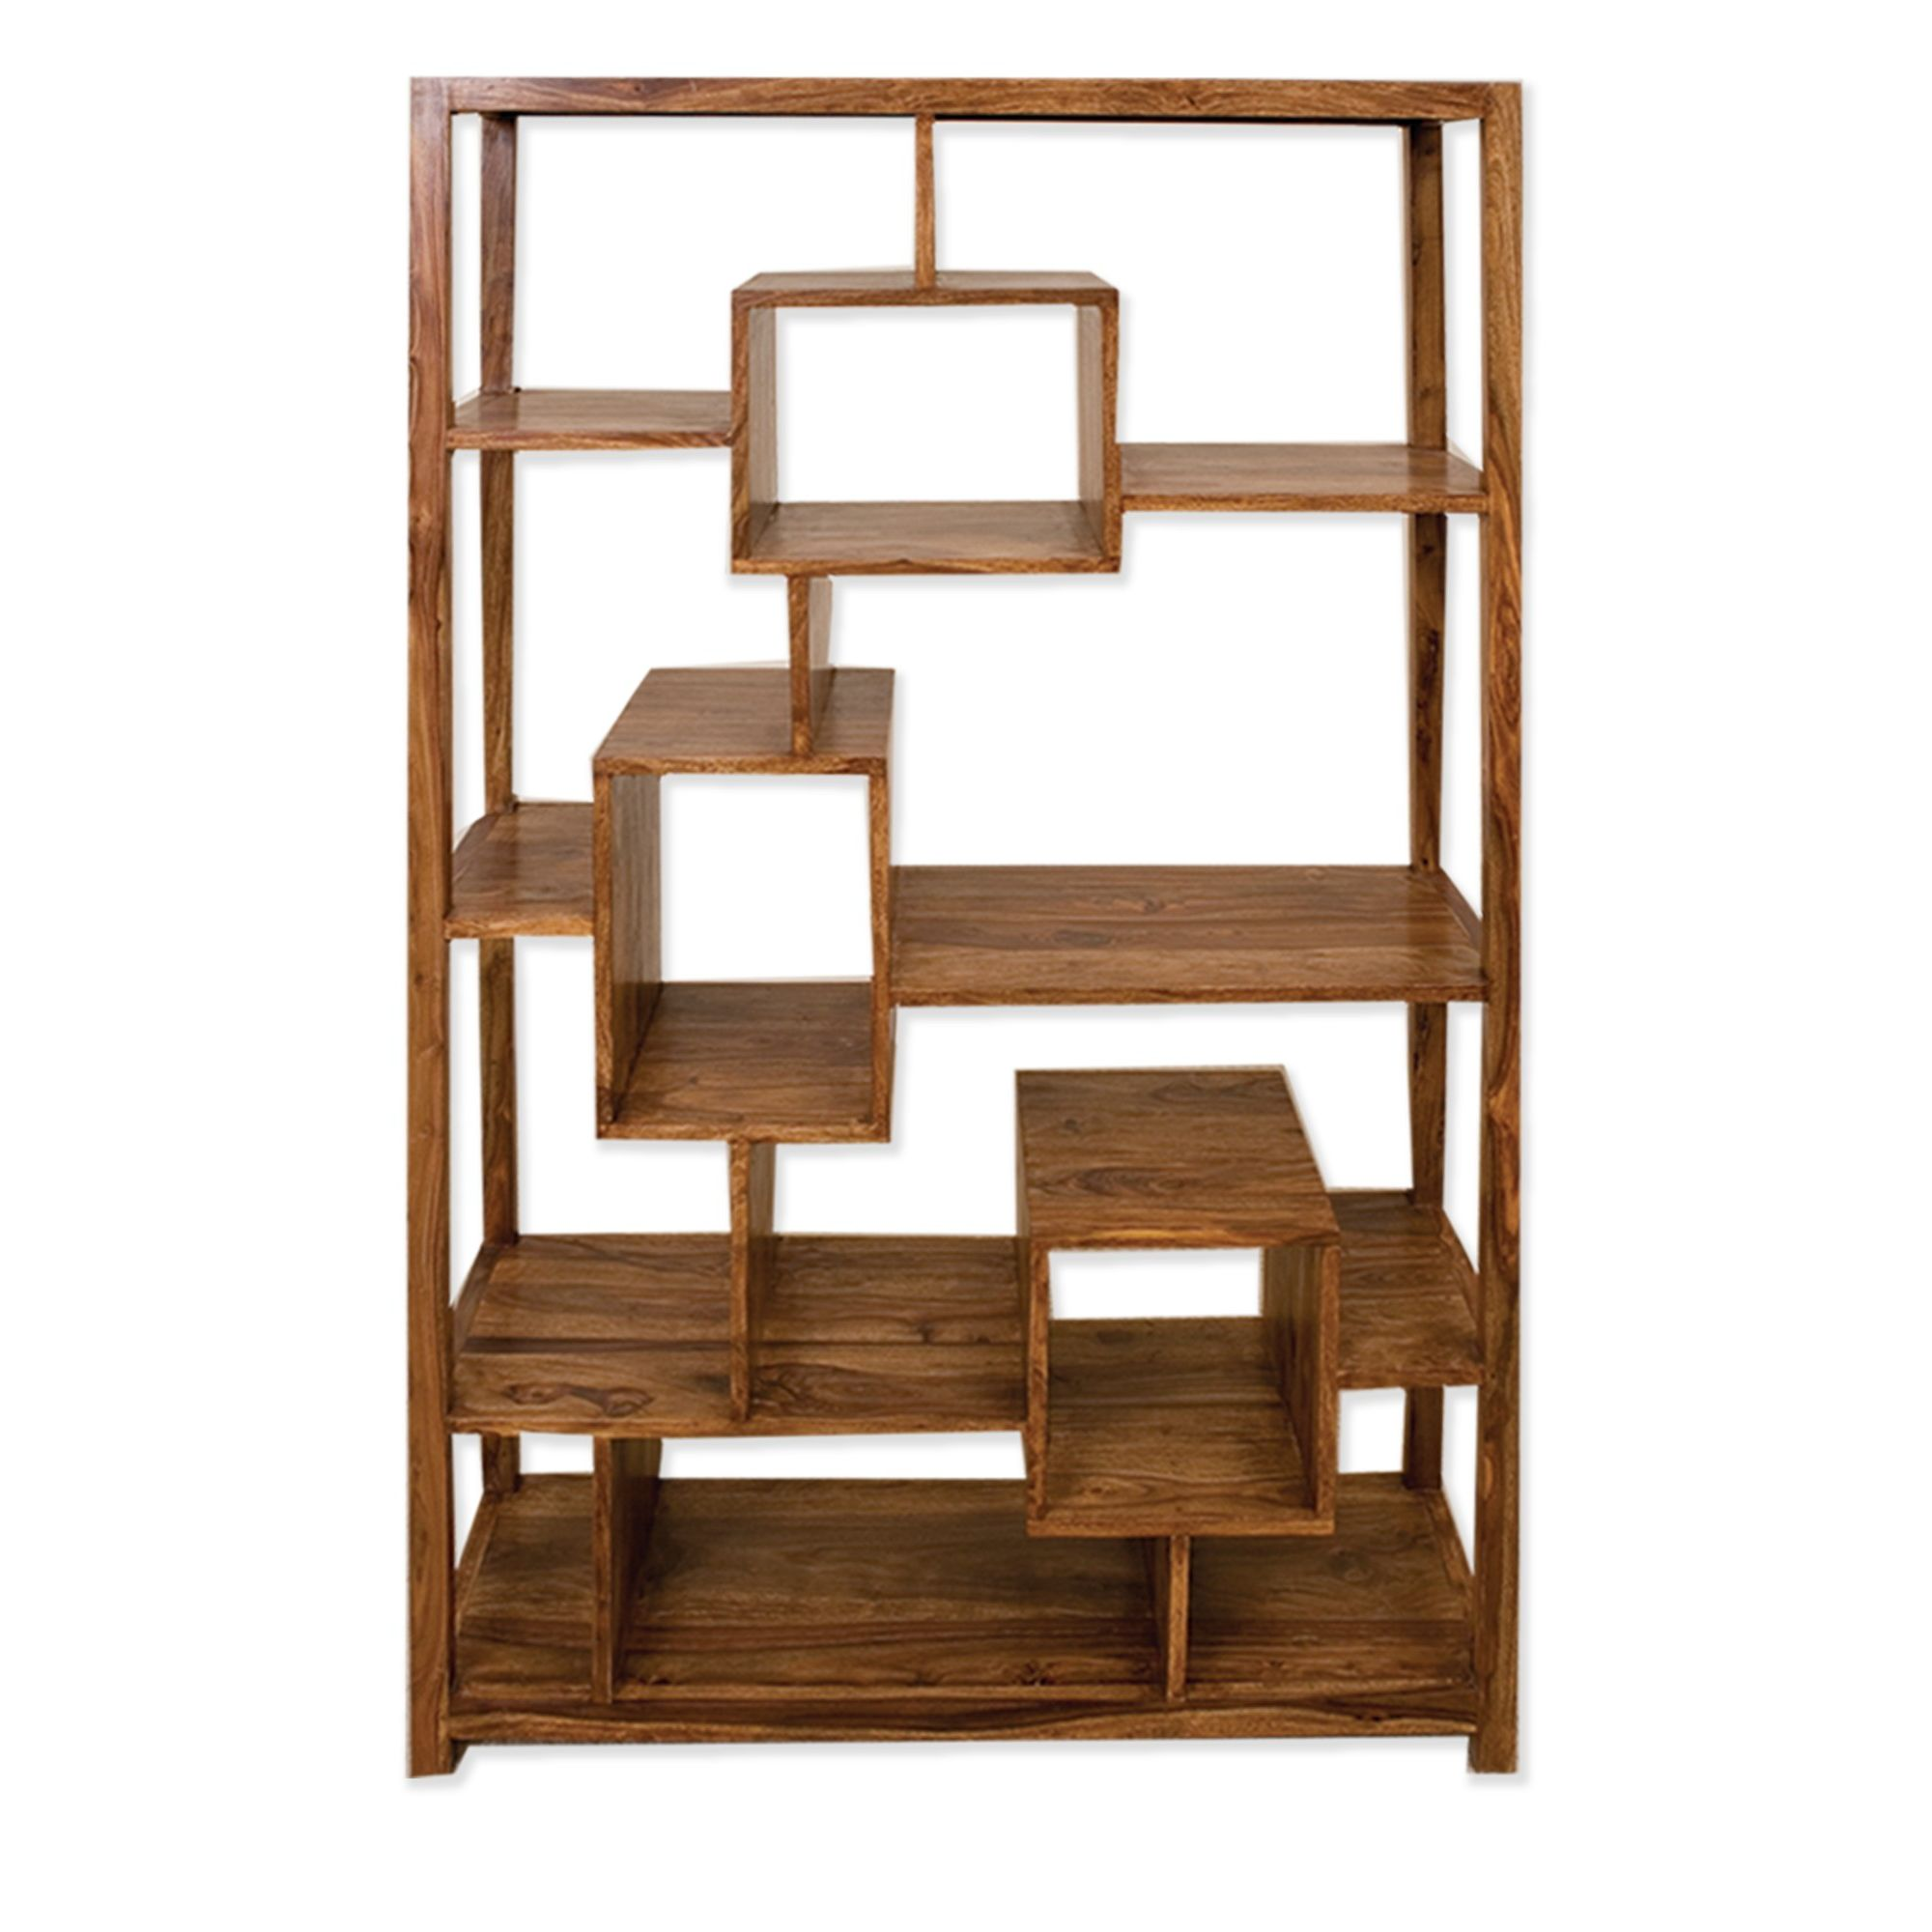 Elements Cubex Living Geometric Bookcase in Warm Lacquer at Tesco Direct